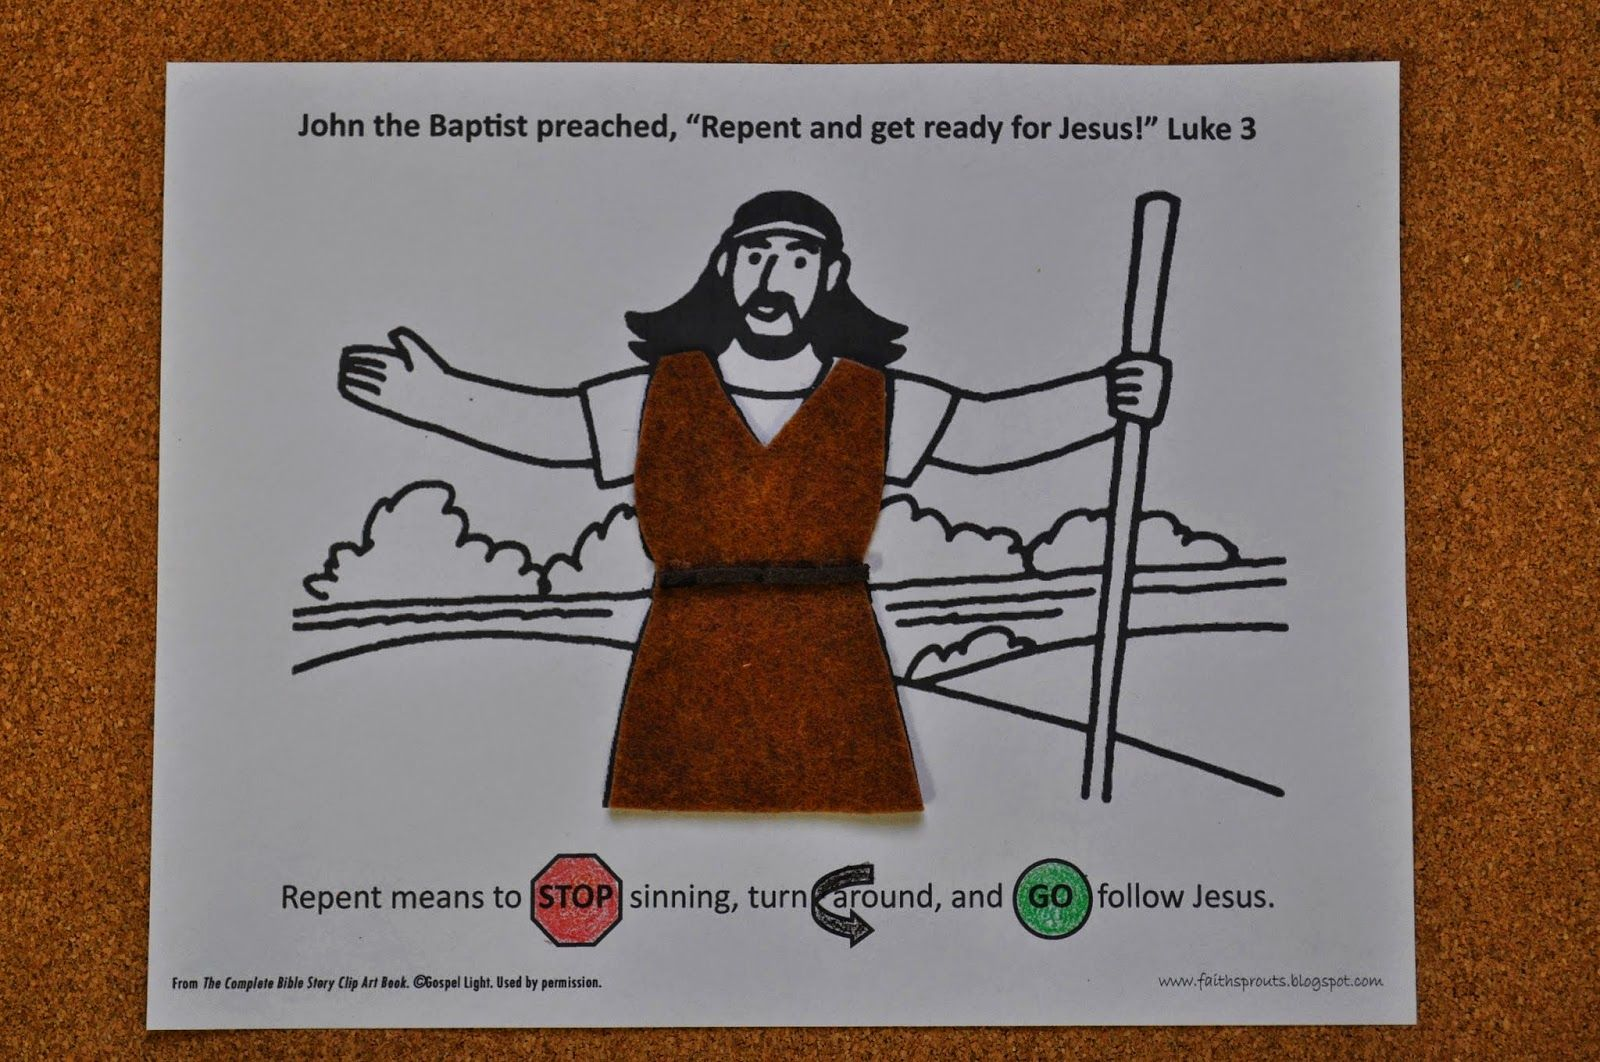 Faith Sprouts John The Baptist Repentance And Baptism